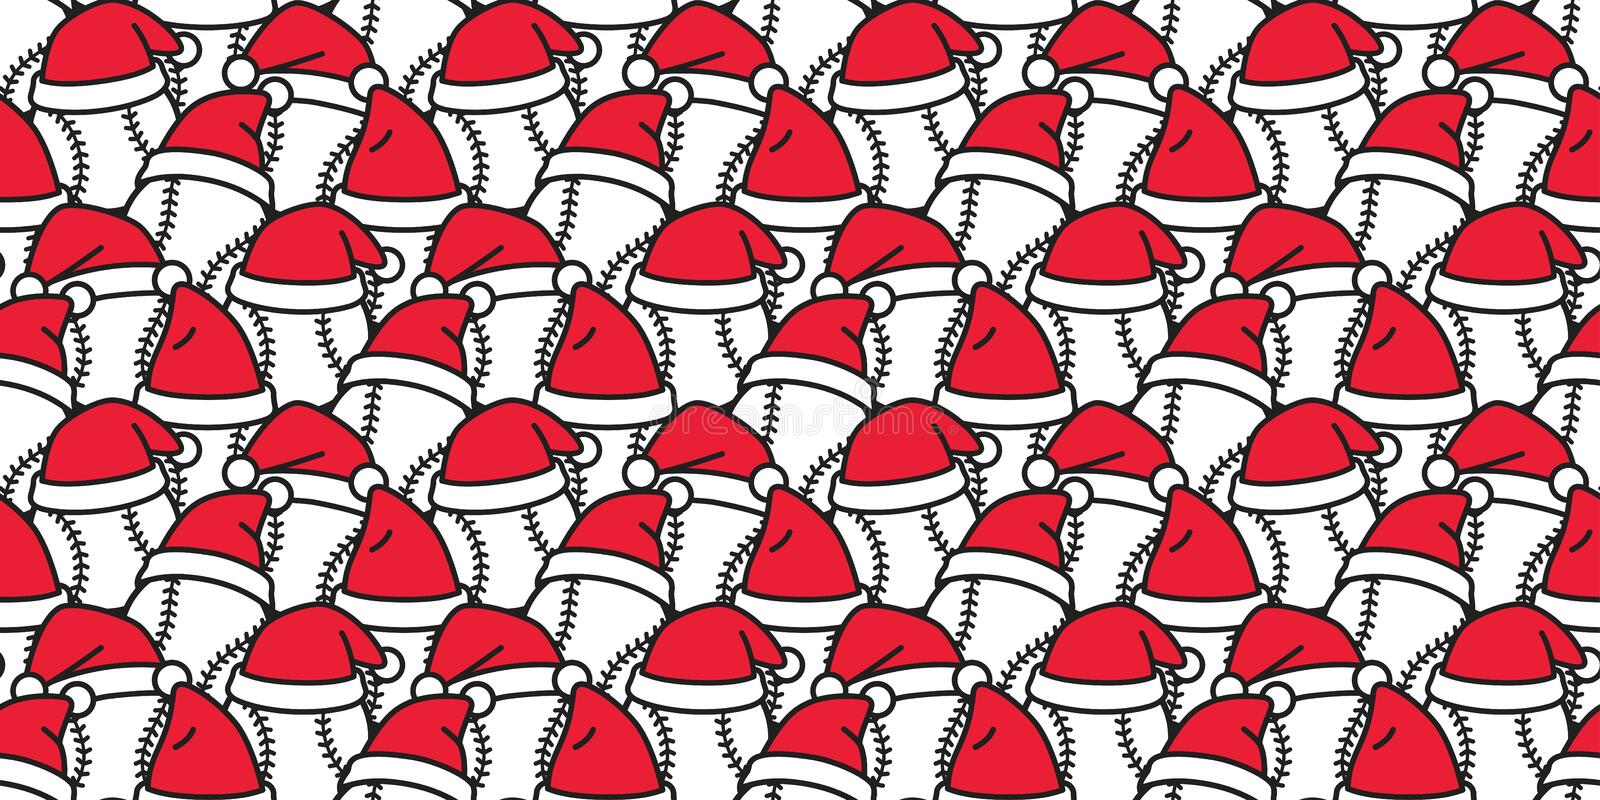 Pattern For Sport Wallpaper: Baseball Seamless Pattern Tennis Ball Vector Tile